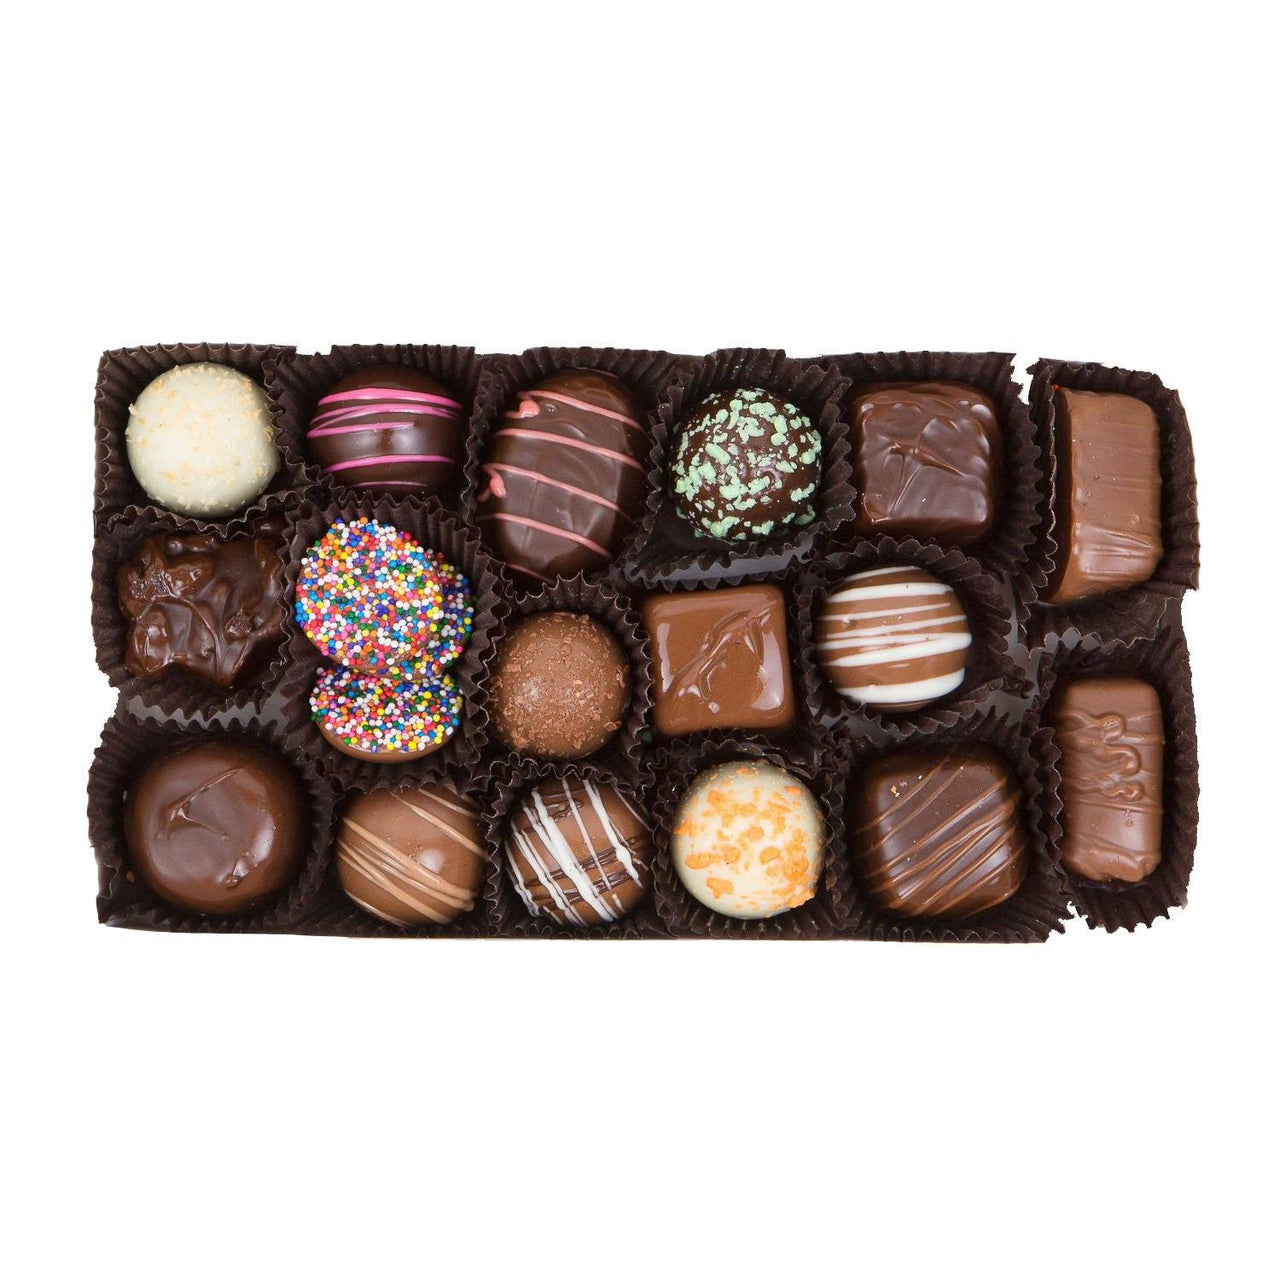 Housewarming Gifts - Assorted Chocolate Gift Box - Jackie's Chocolate (1487132065827)